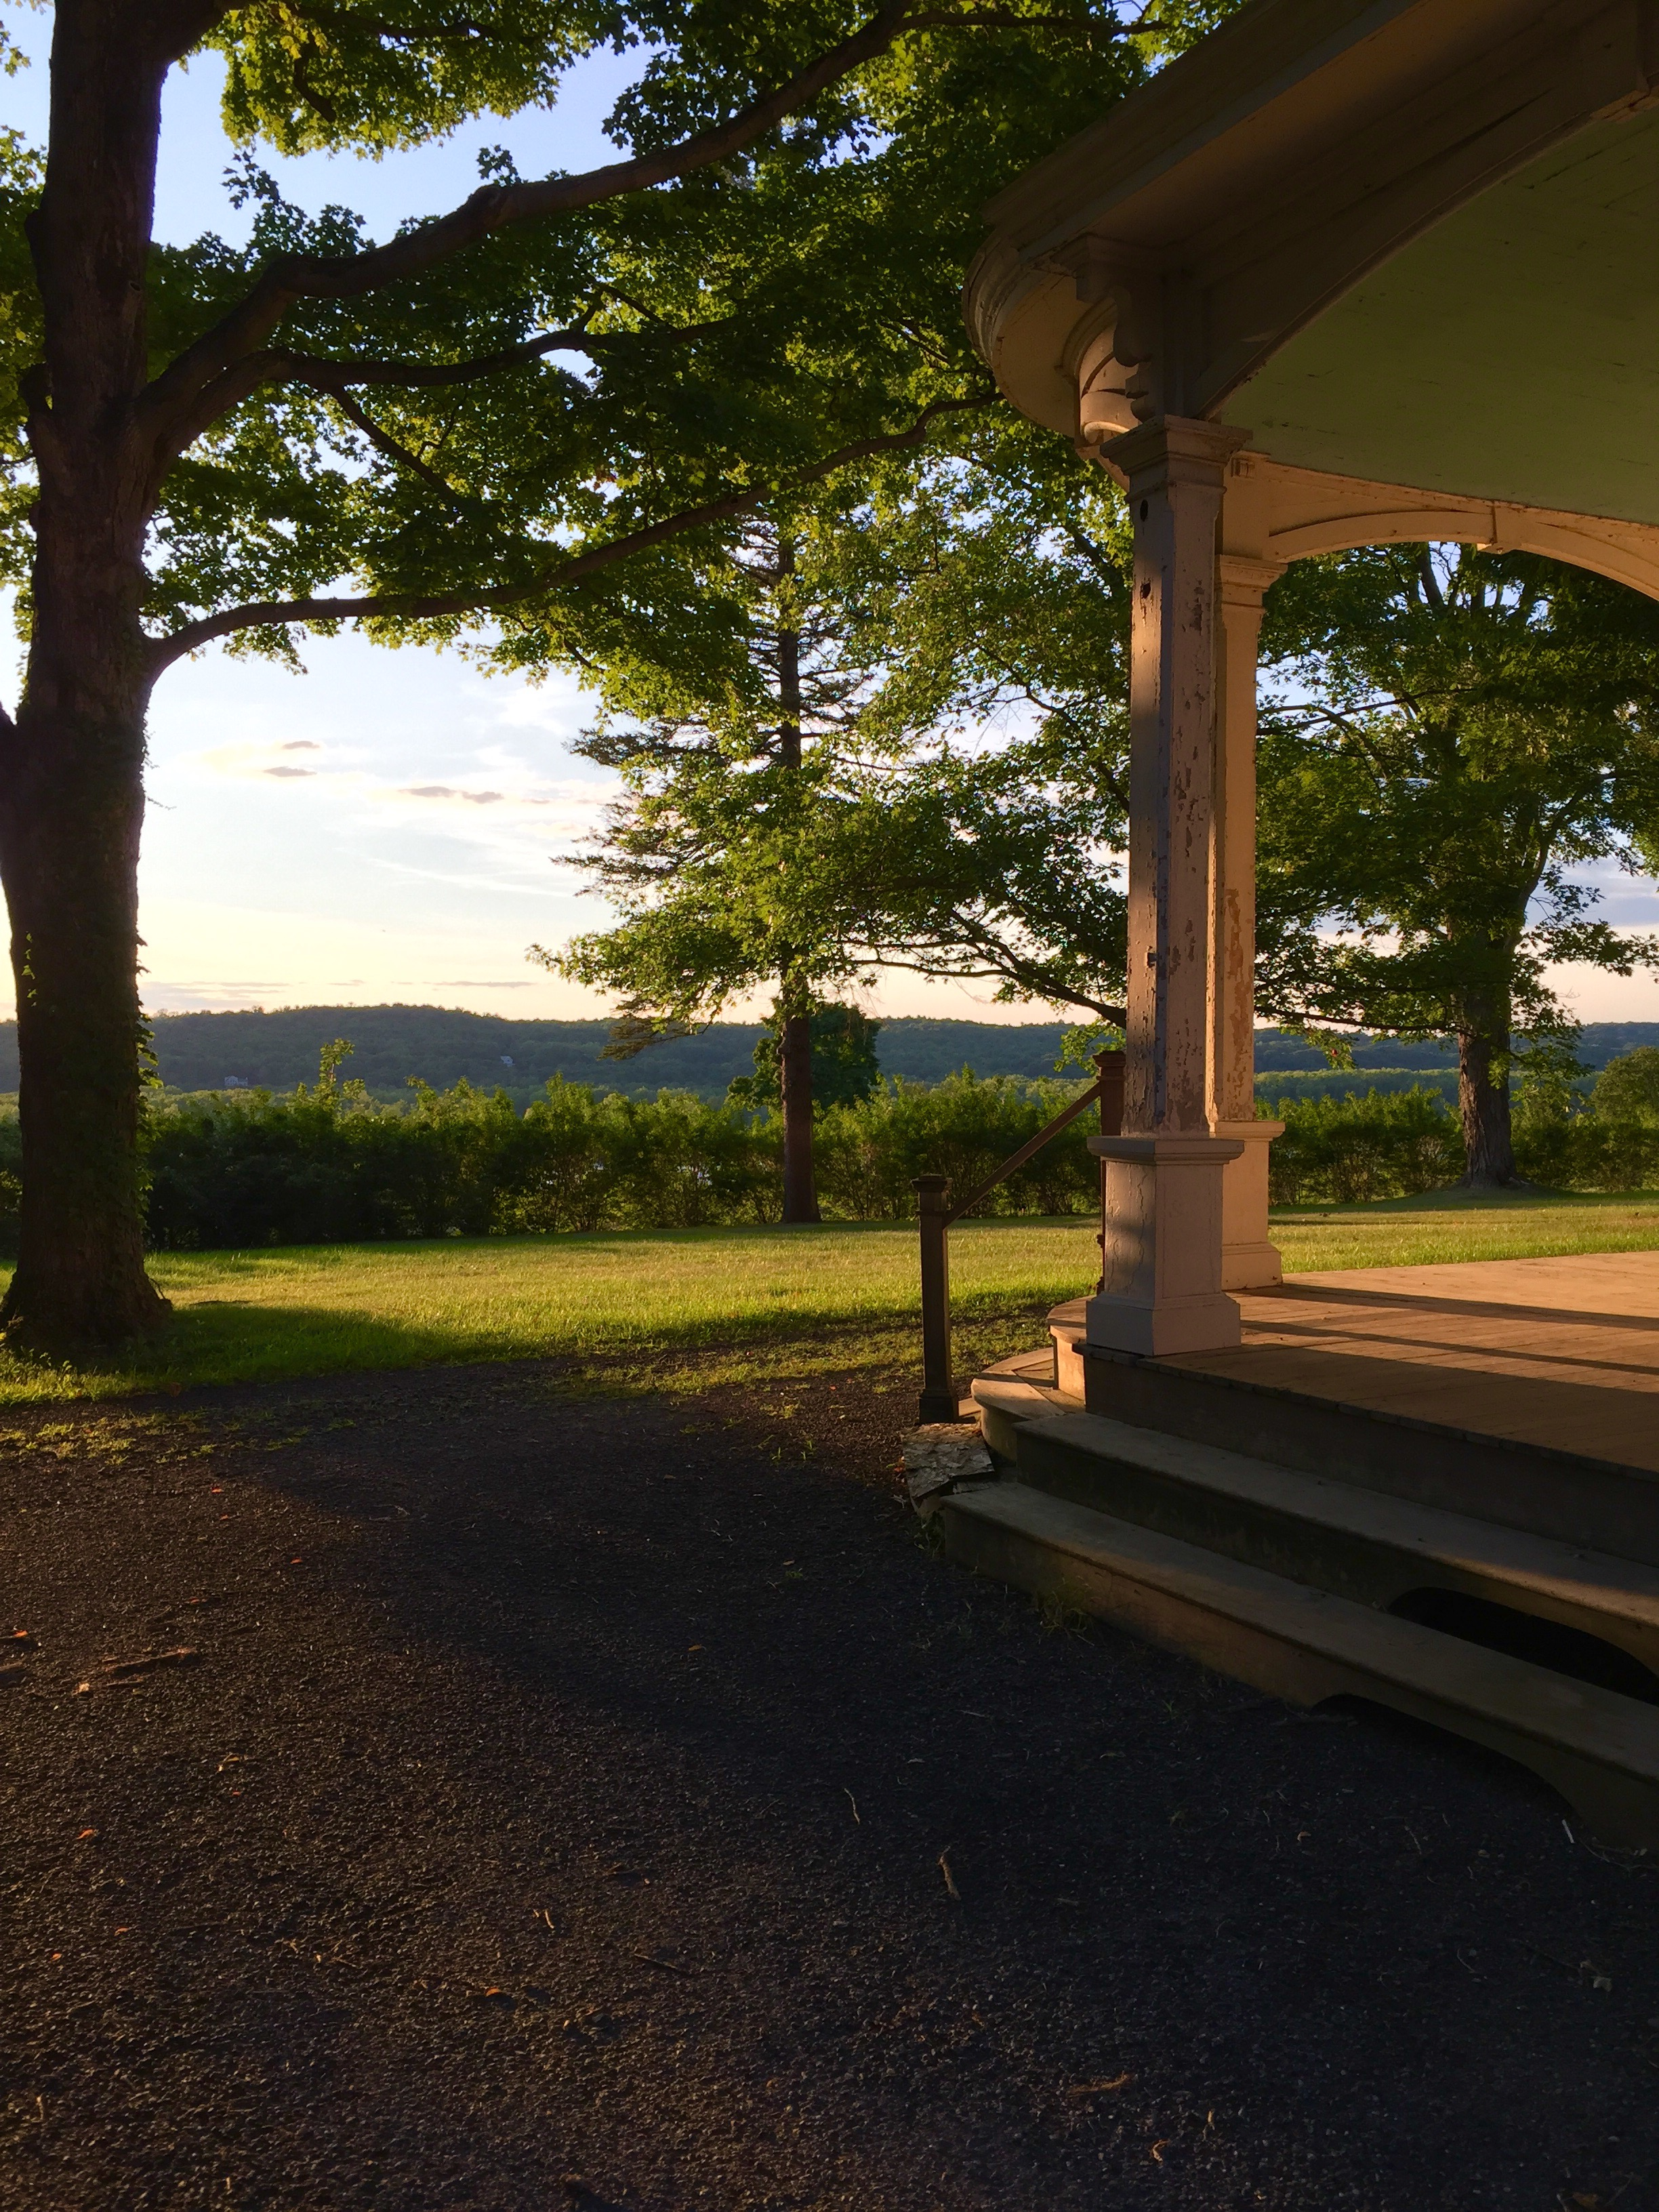 The beautiful porch overlooking the Hudson River